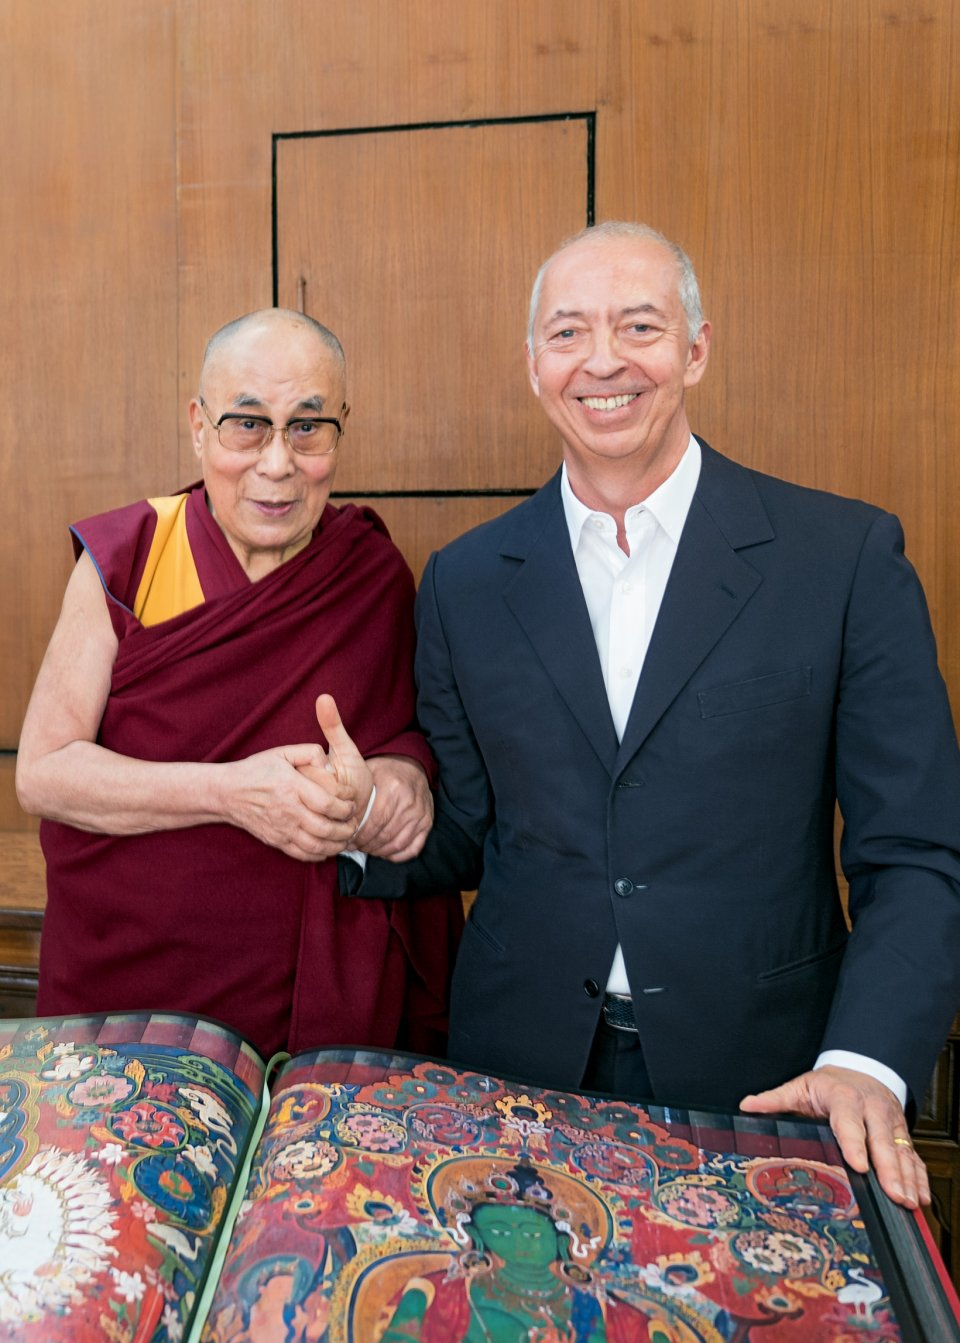 His Holiness the 14th Dalai Lama and Benedikt Taschen